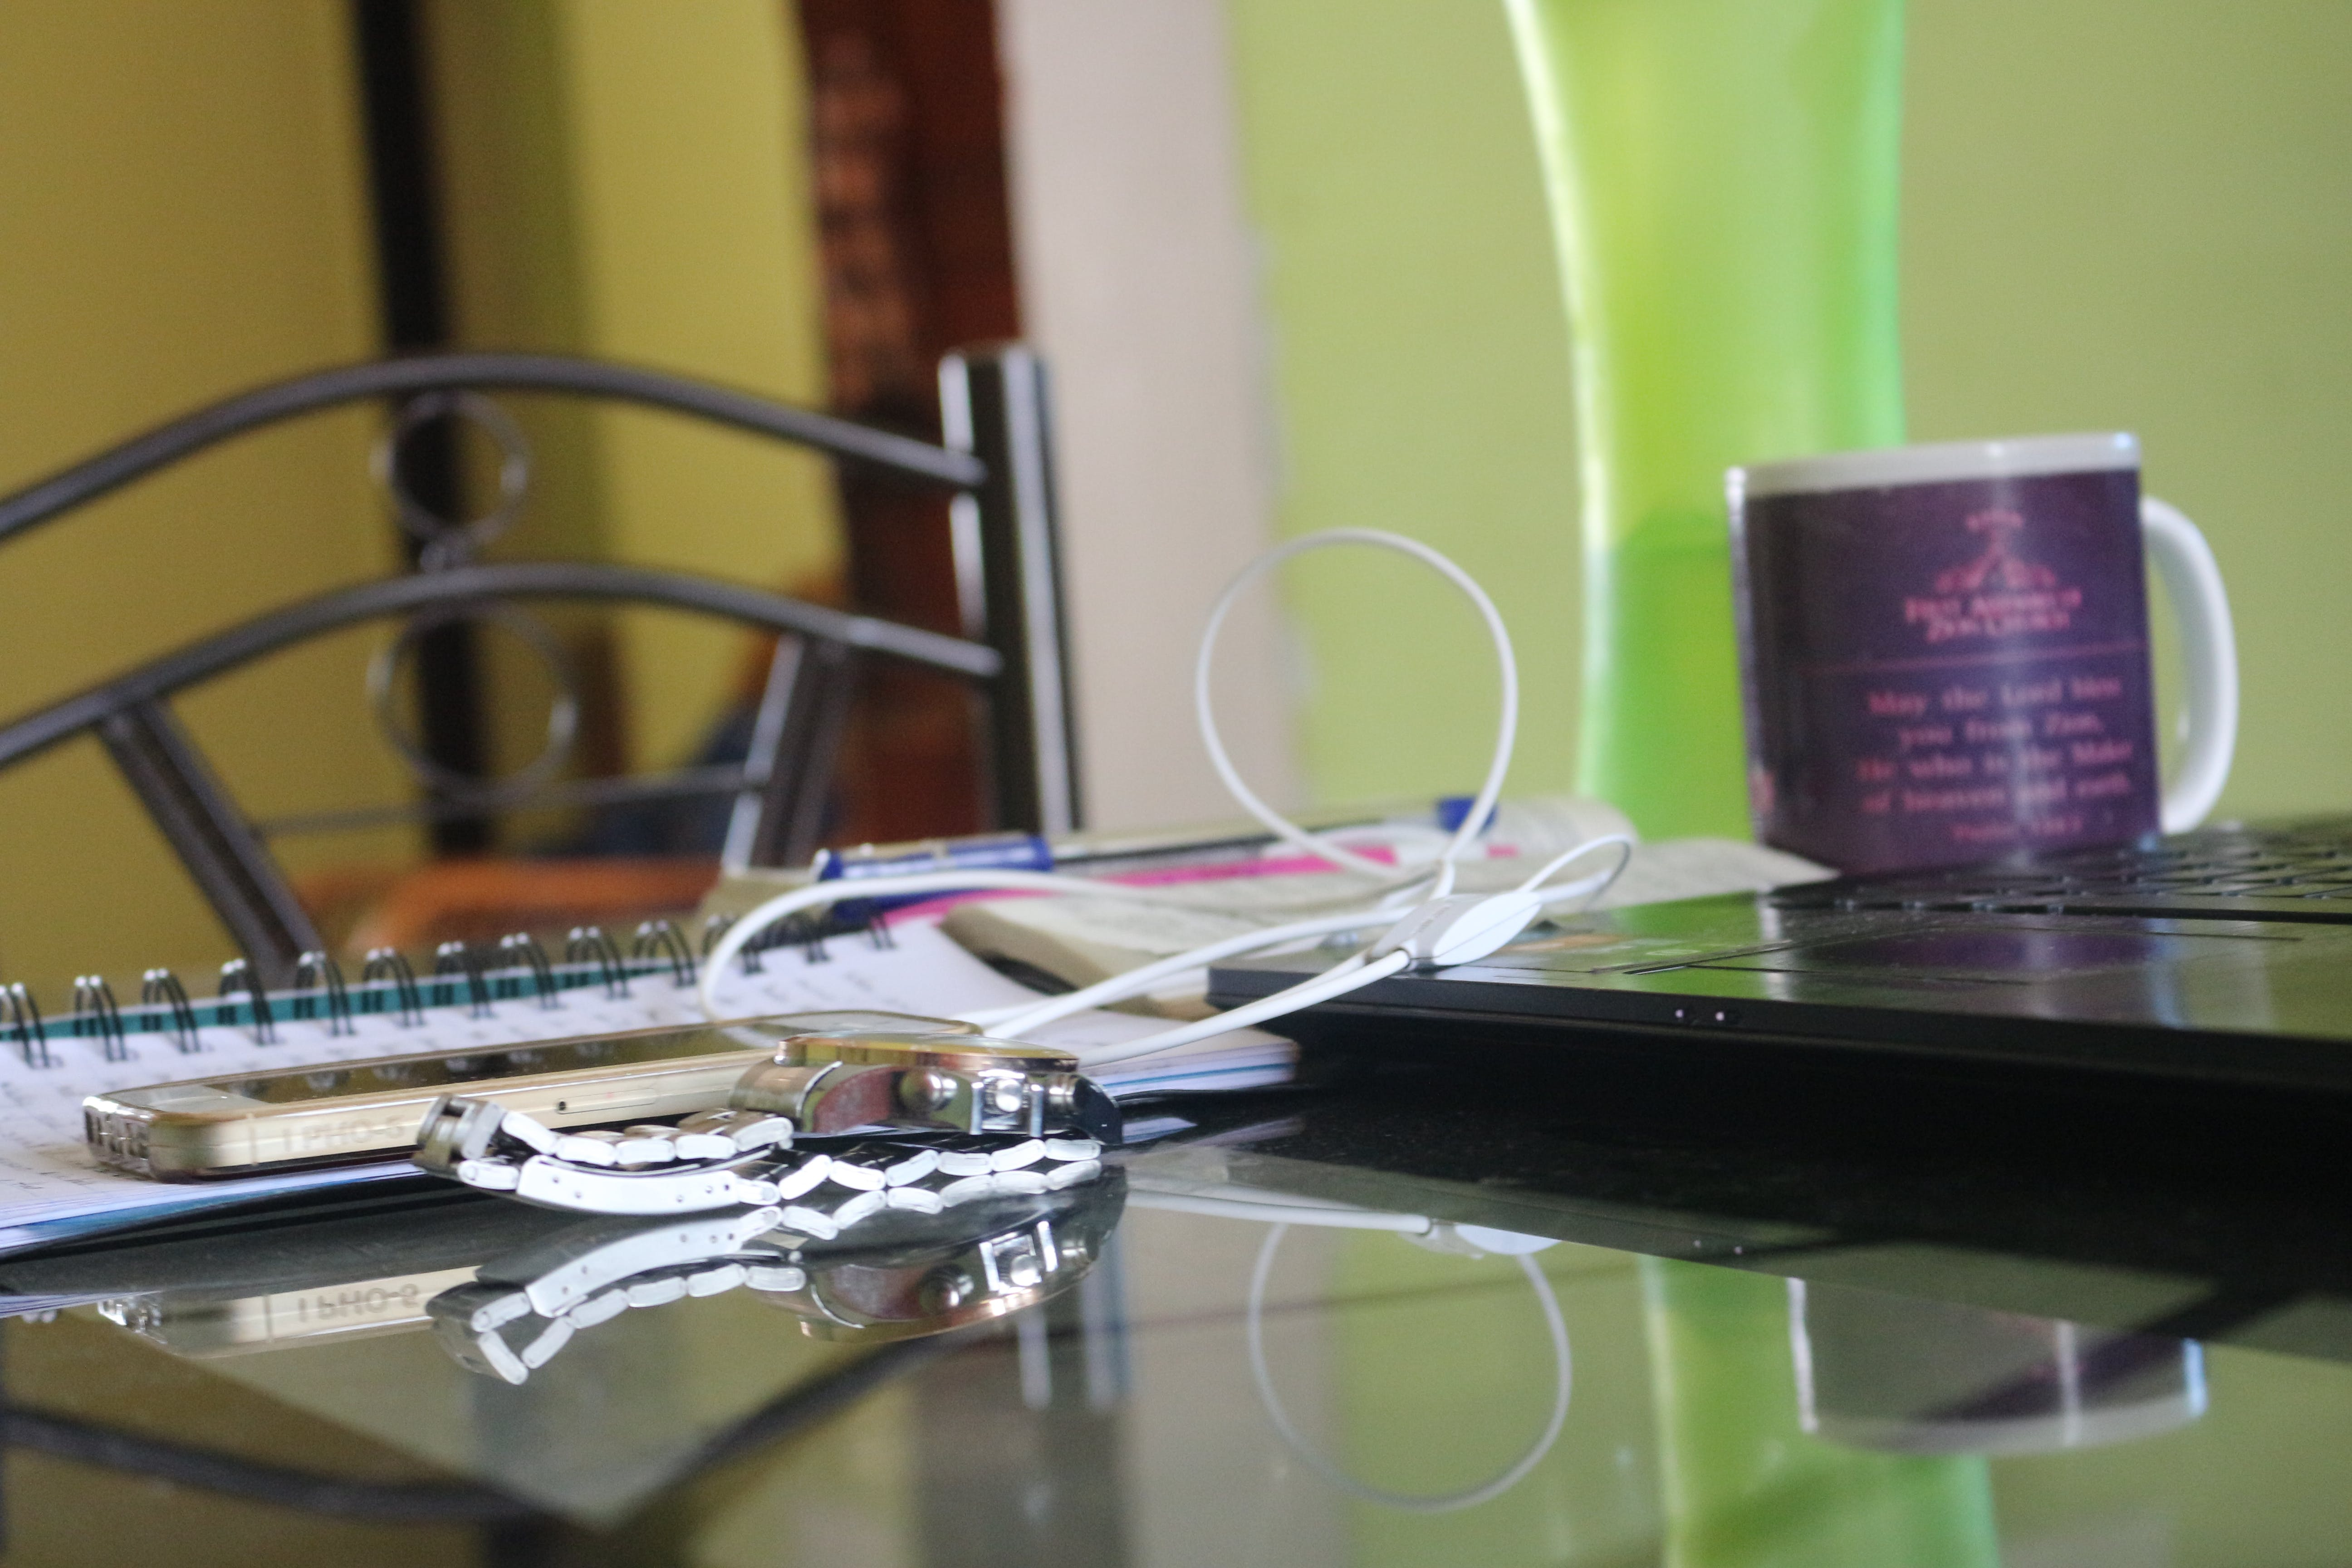 Round Silver-colored Watch With Link Band on Top of Table Beside Black Laptop Computer